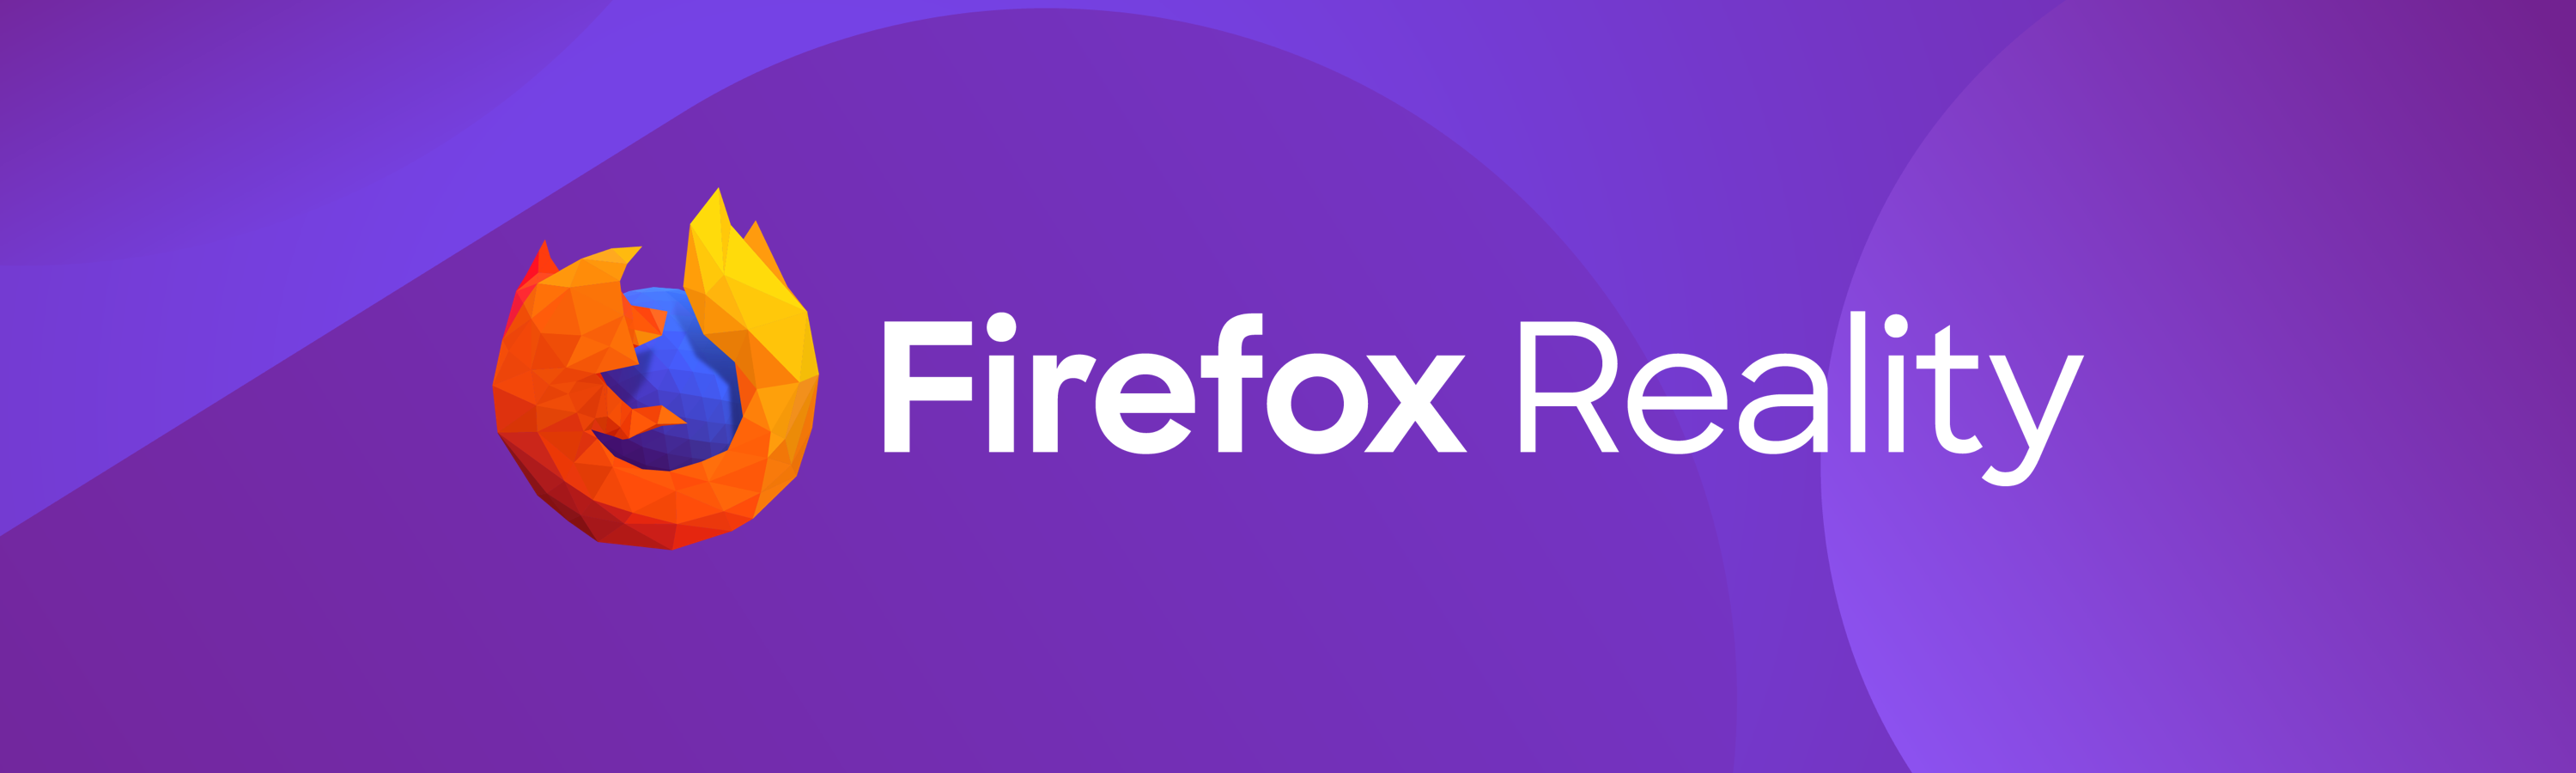 Firefox Reality for Oculus Quest